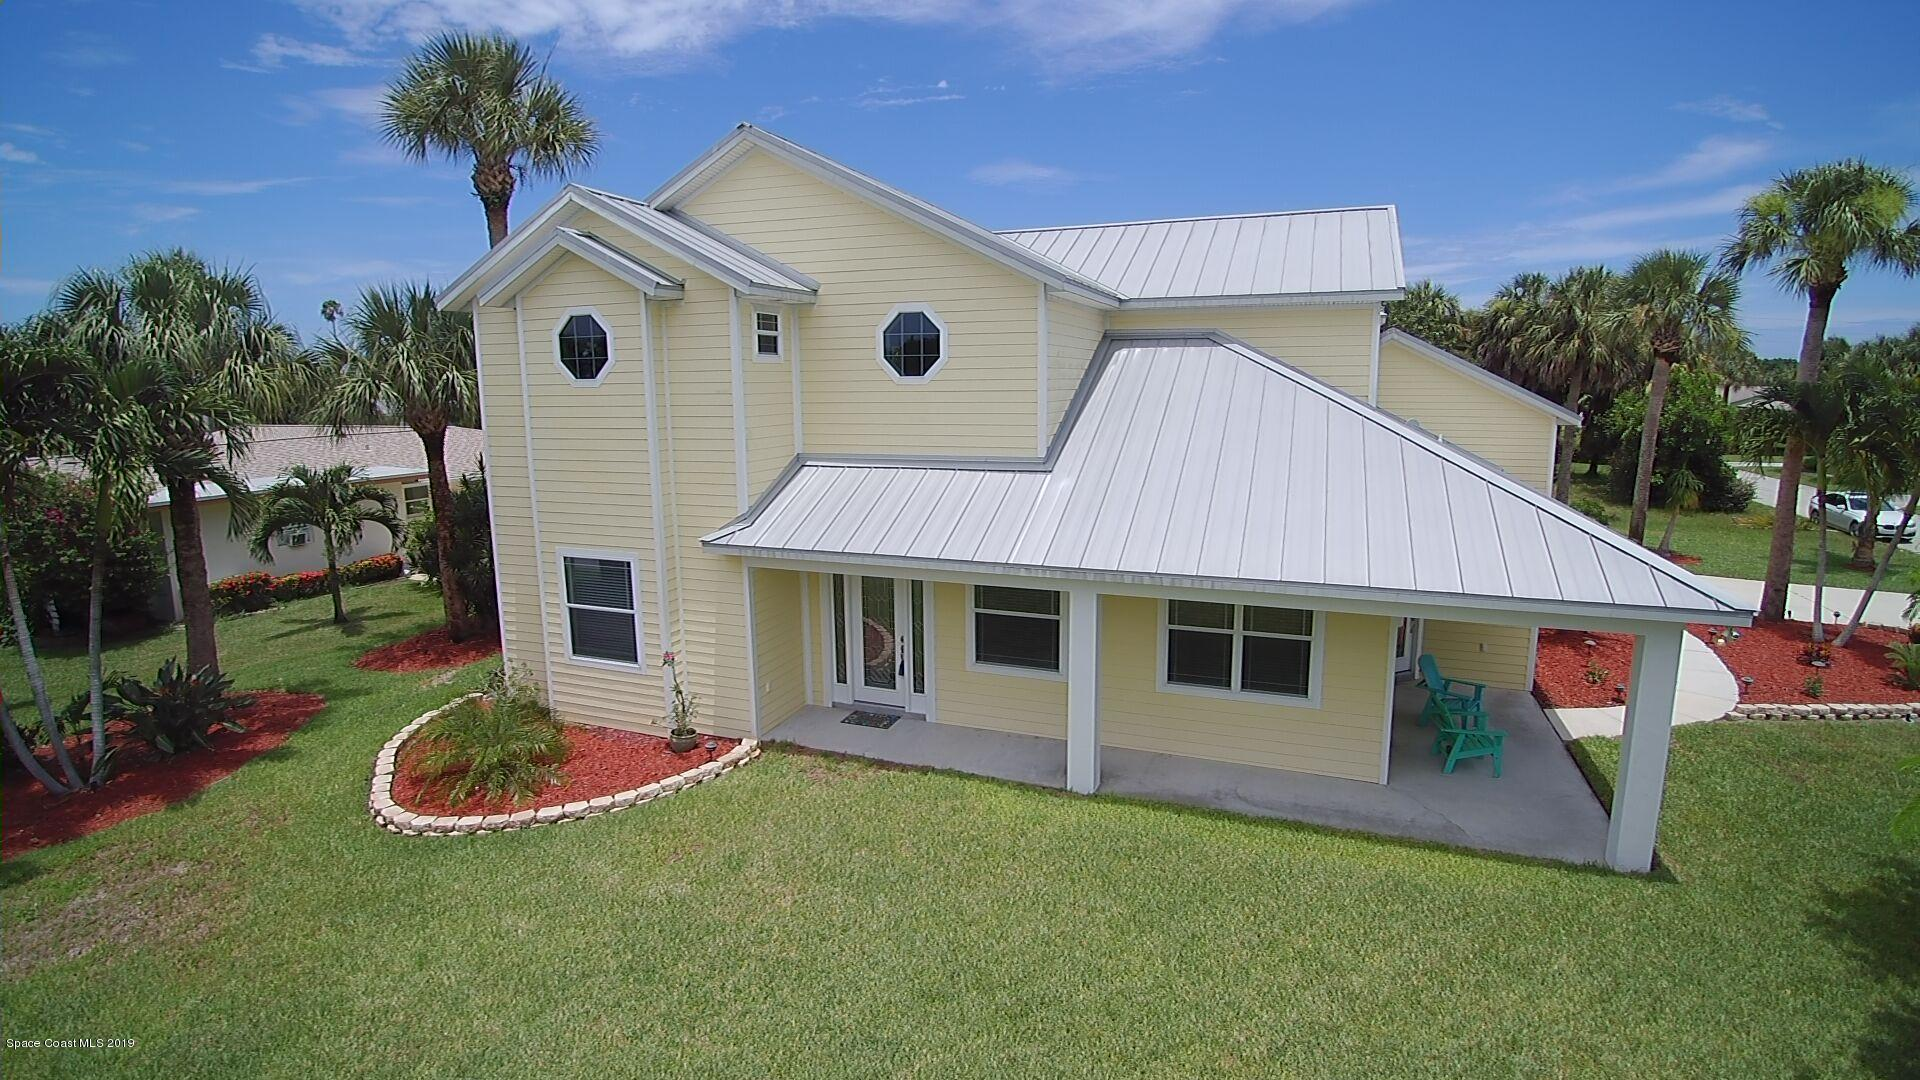 Single Family Homes for Sale at 146 12th Indialantic, Florida 32903 United States